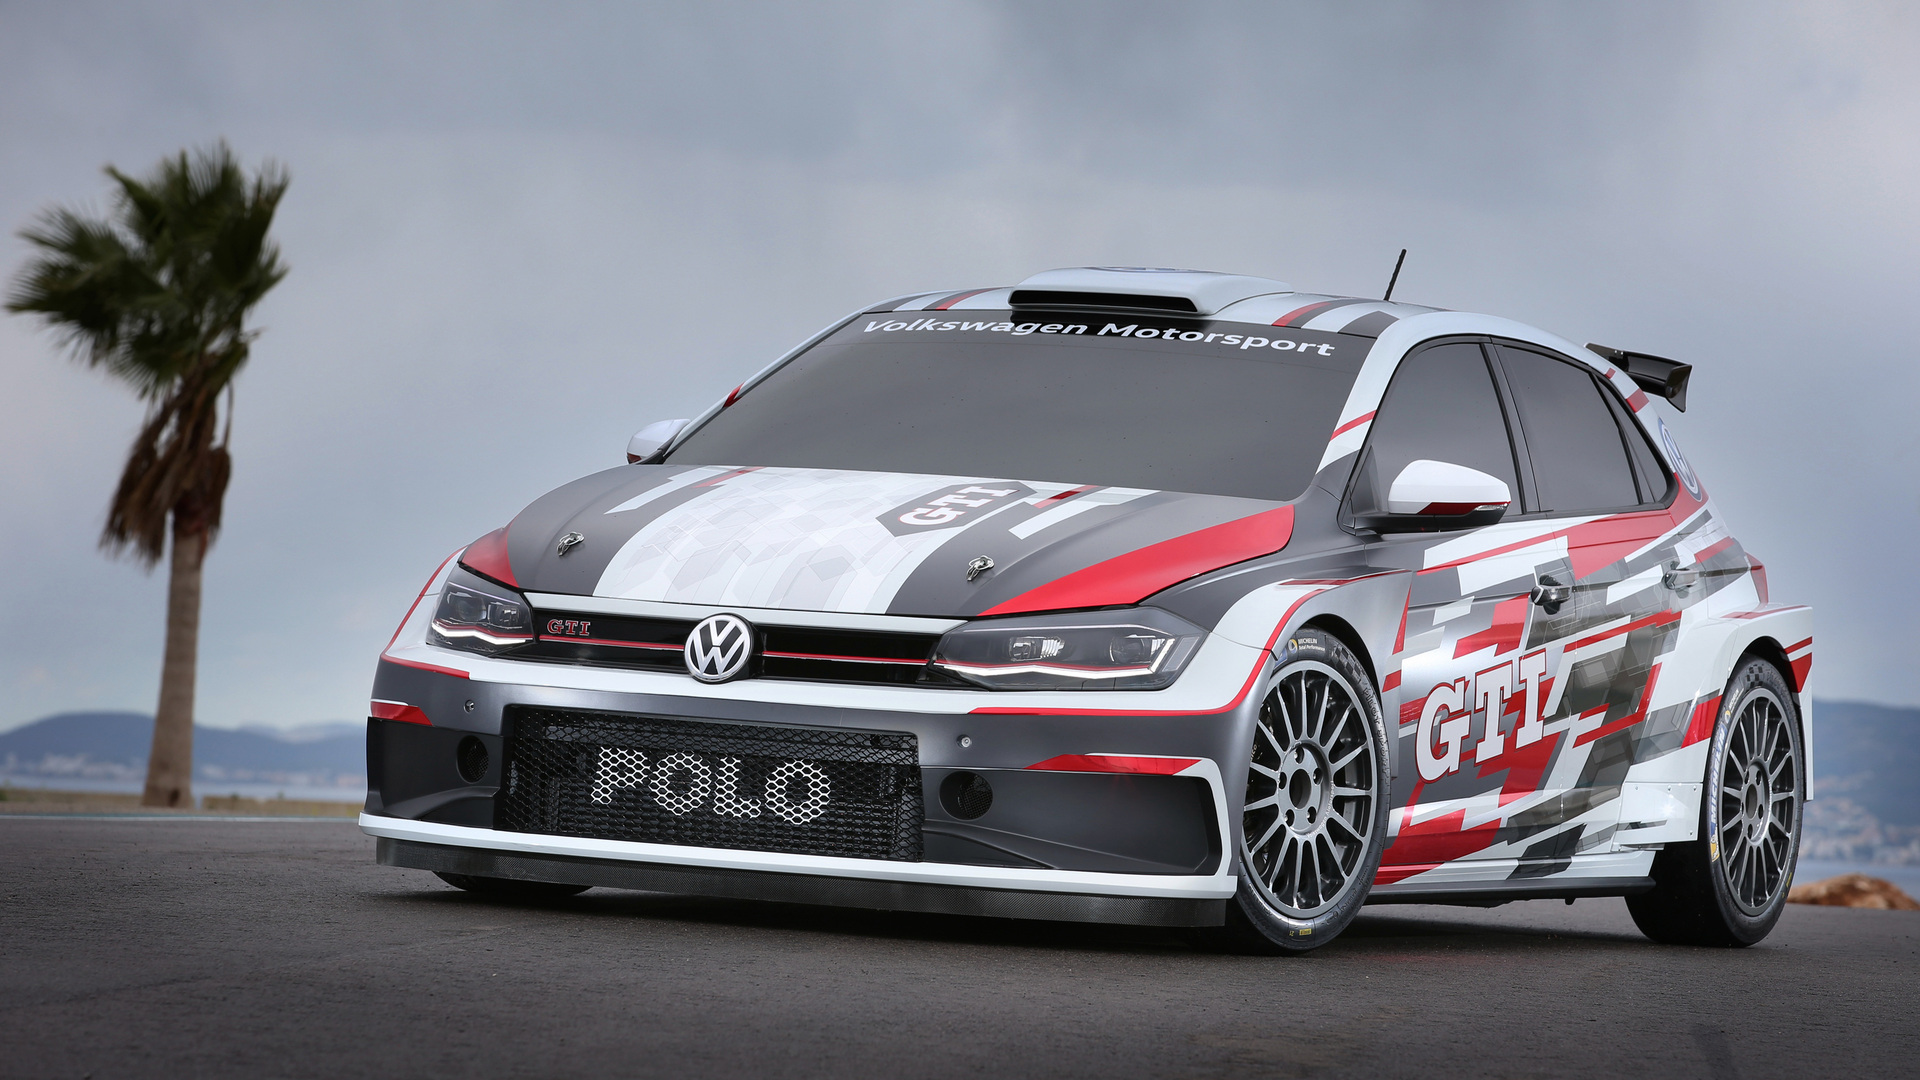 Volkswagen Polo Hd Wallpapers Download Volkswagen Car